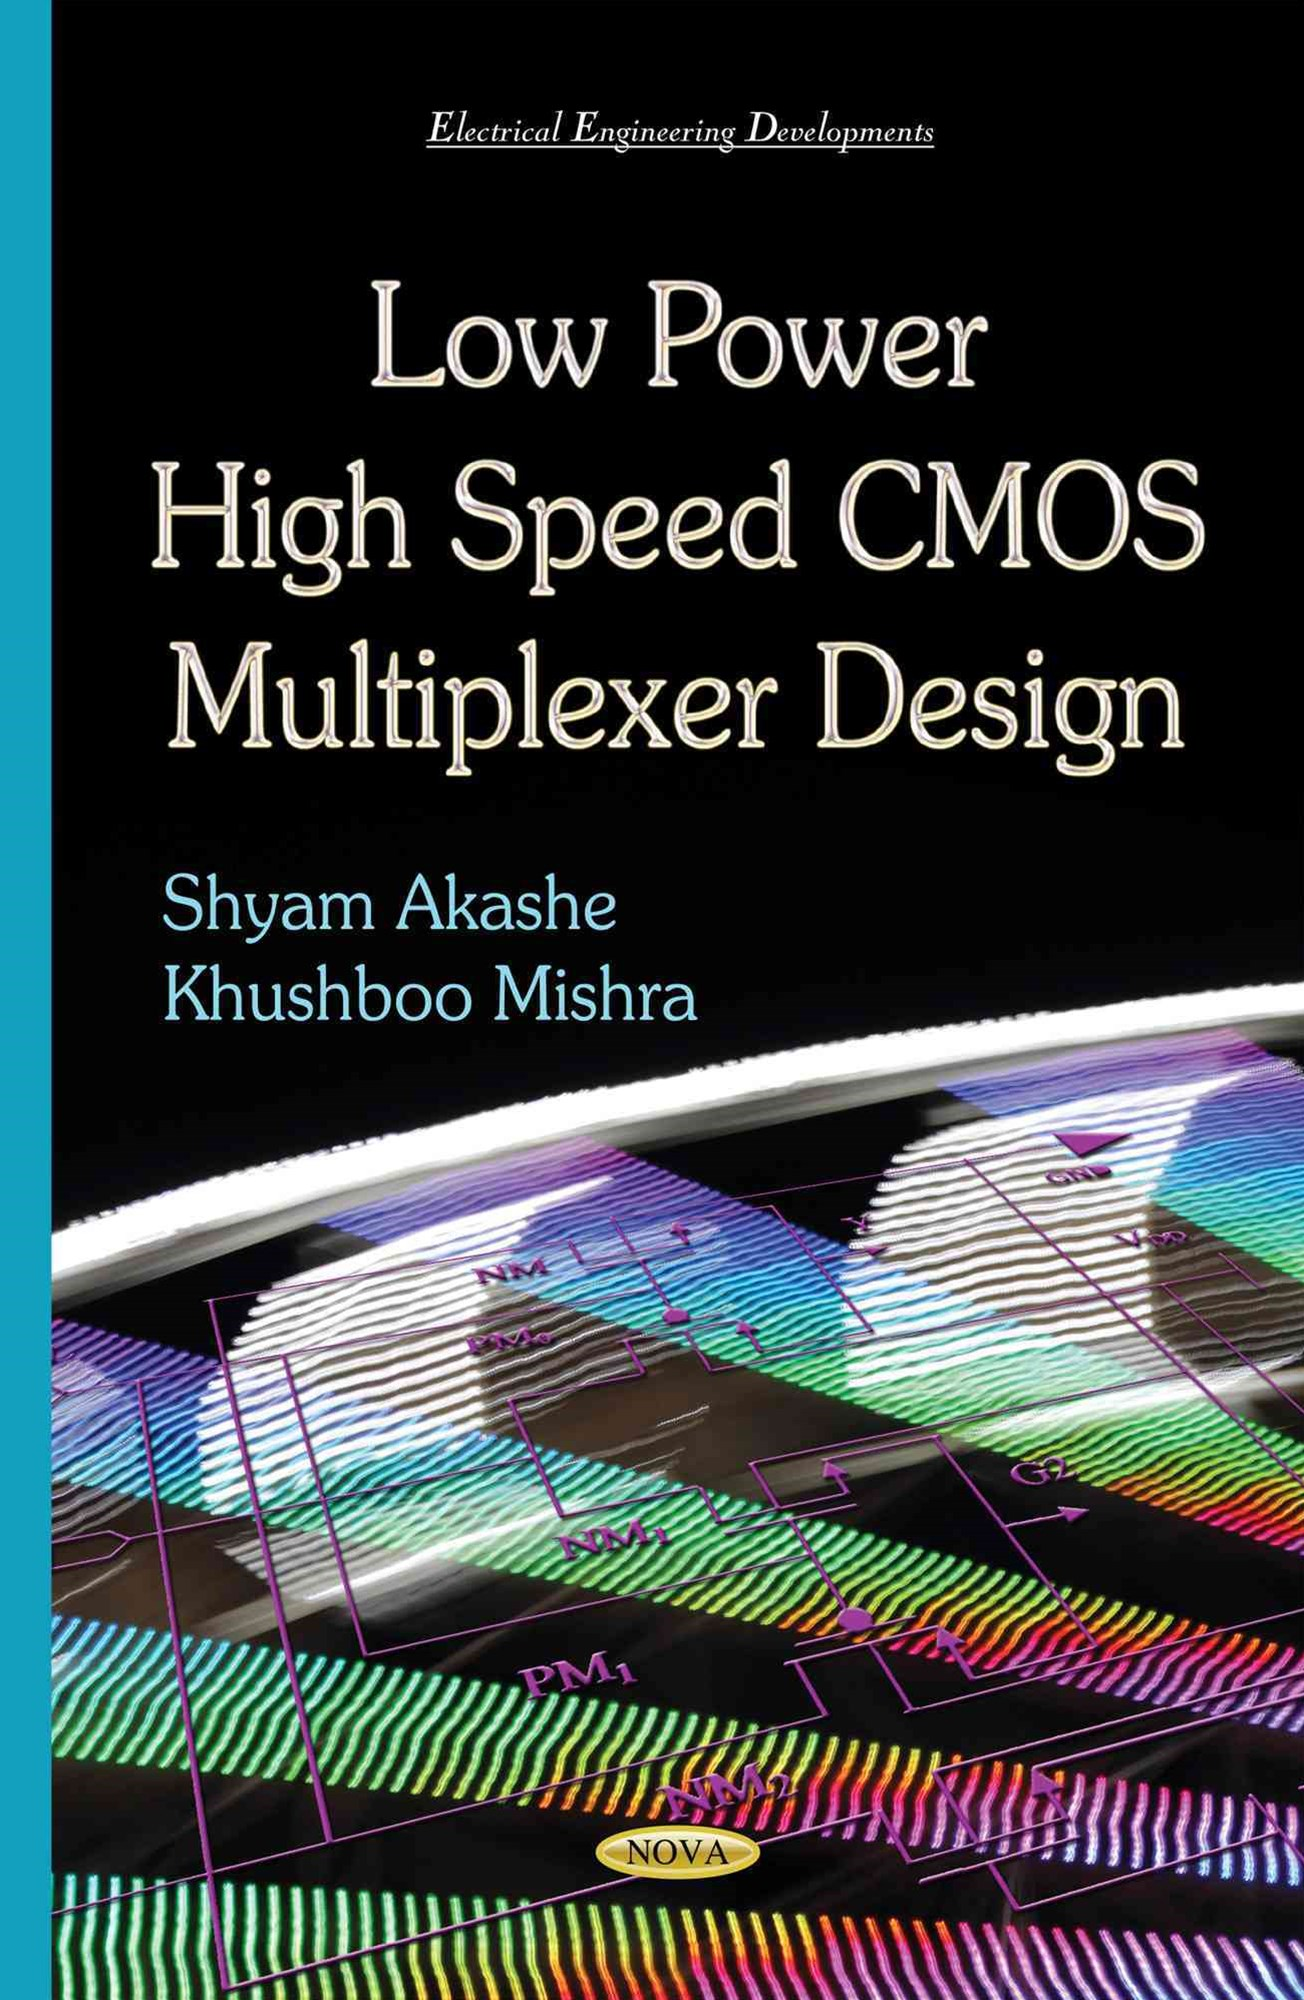 Low Power High Speed CMOS Multiplexer Design